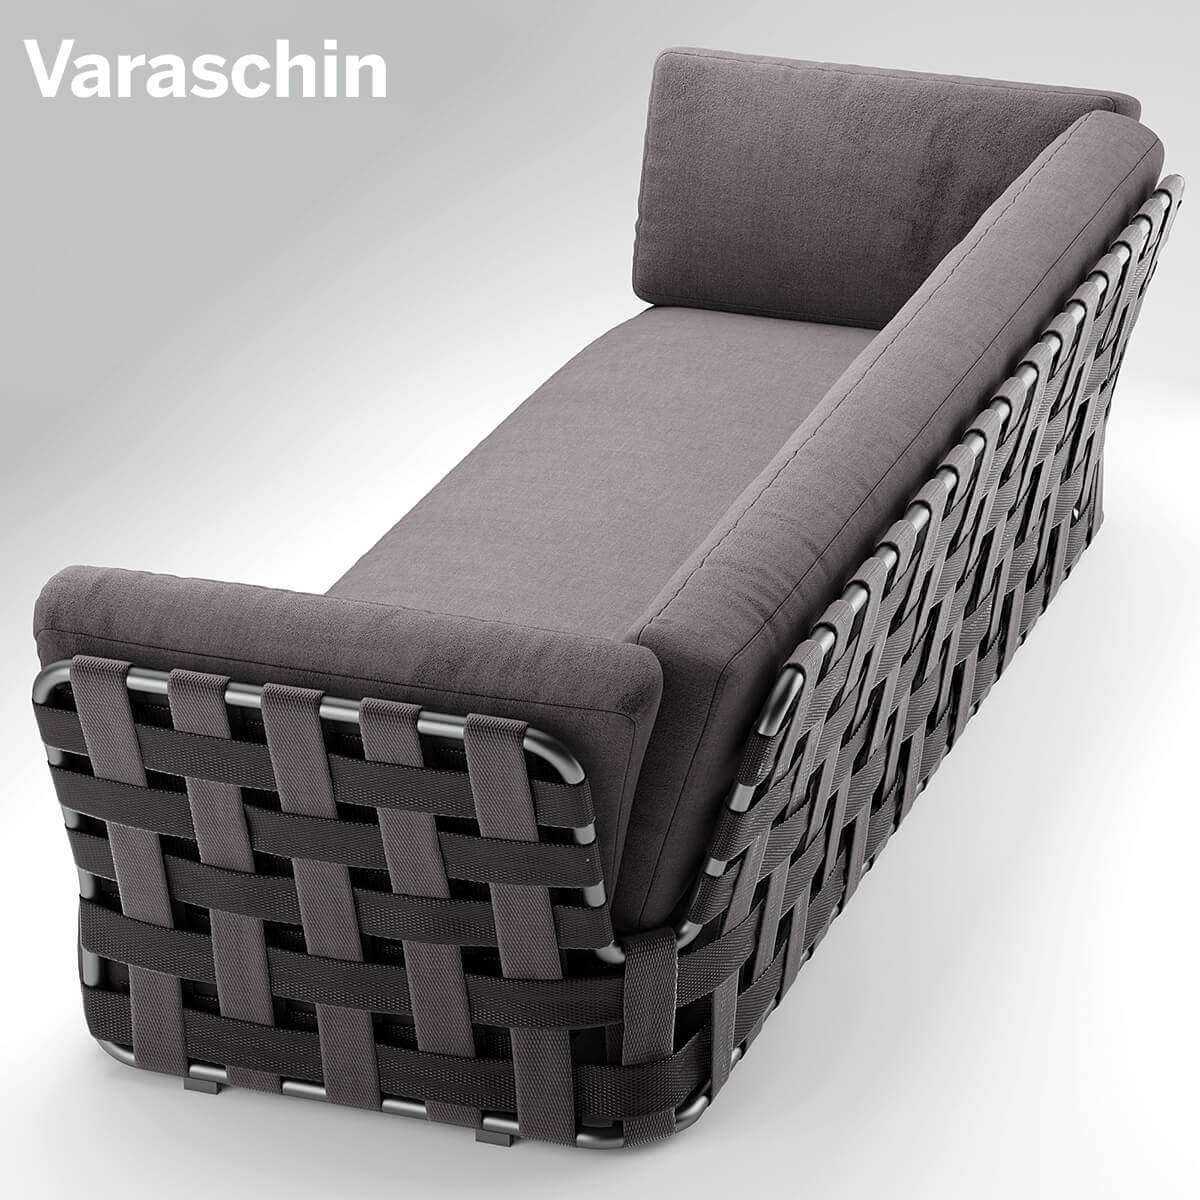 Chair Varaschin Victor Sofa 3D Model Outdoor Furniture 2